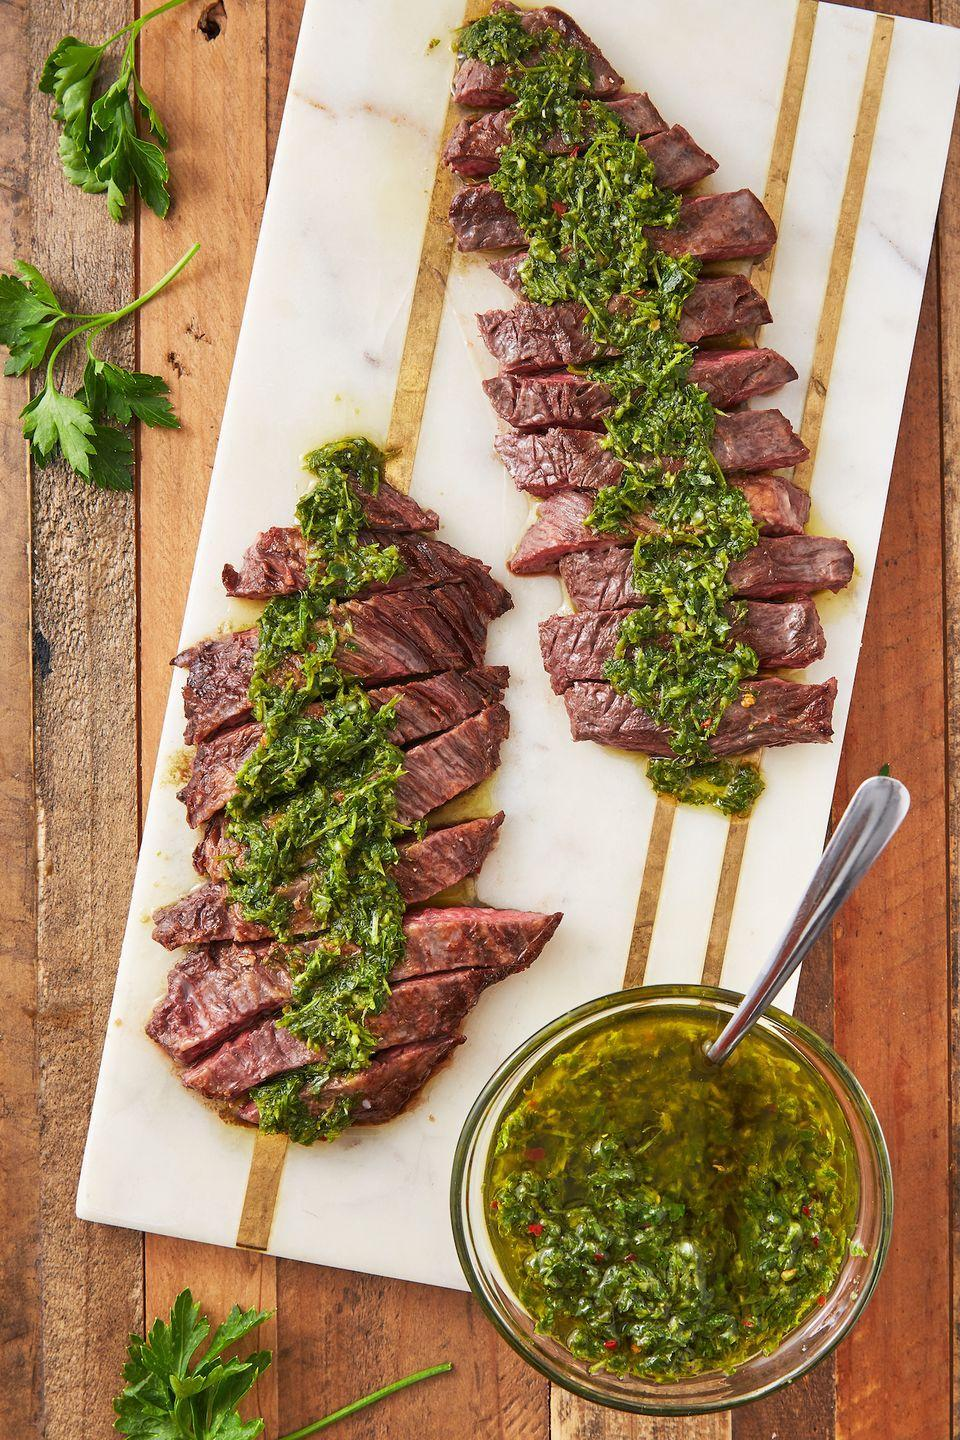 """<p>Swap the red wine vinegar for something that's keto-friendly and you have yourself a 20-minute meal.</p><p>Get the recipe from <a href=""""https://www.delish.com/cooking/recipe-ideas/a27793321/chimichurri-sauce-recipe/"""" rel=""""nofollow noopener"""" target=""""_blank"""" data-ylk=""""slk:Delish"""" class=""""link rapid-noclick-resp"""">Delish</a>.</p>"""